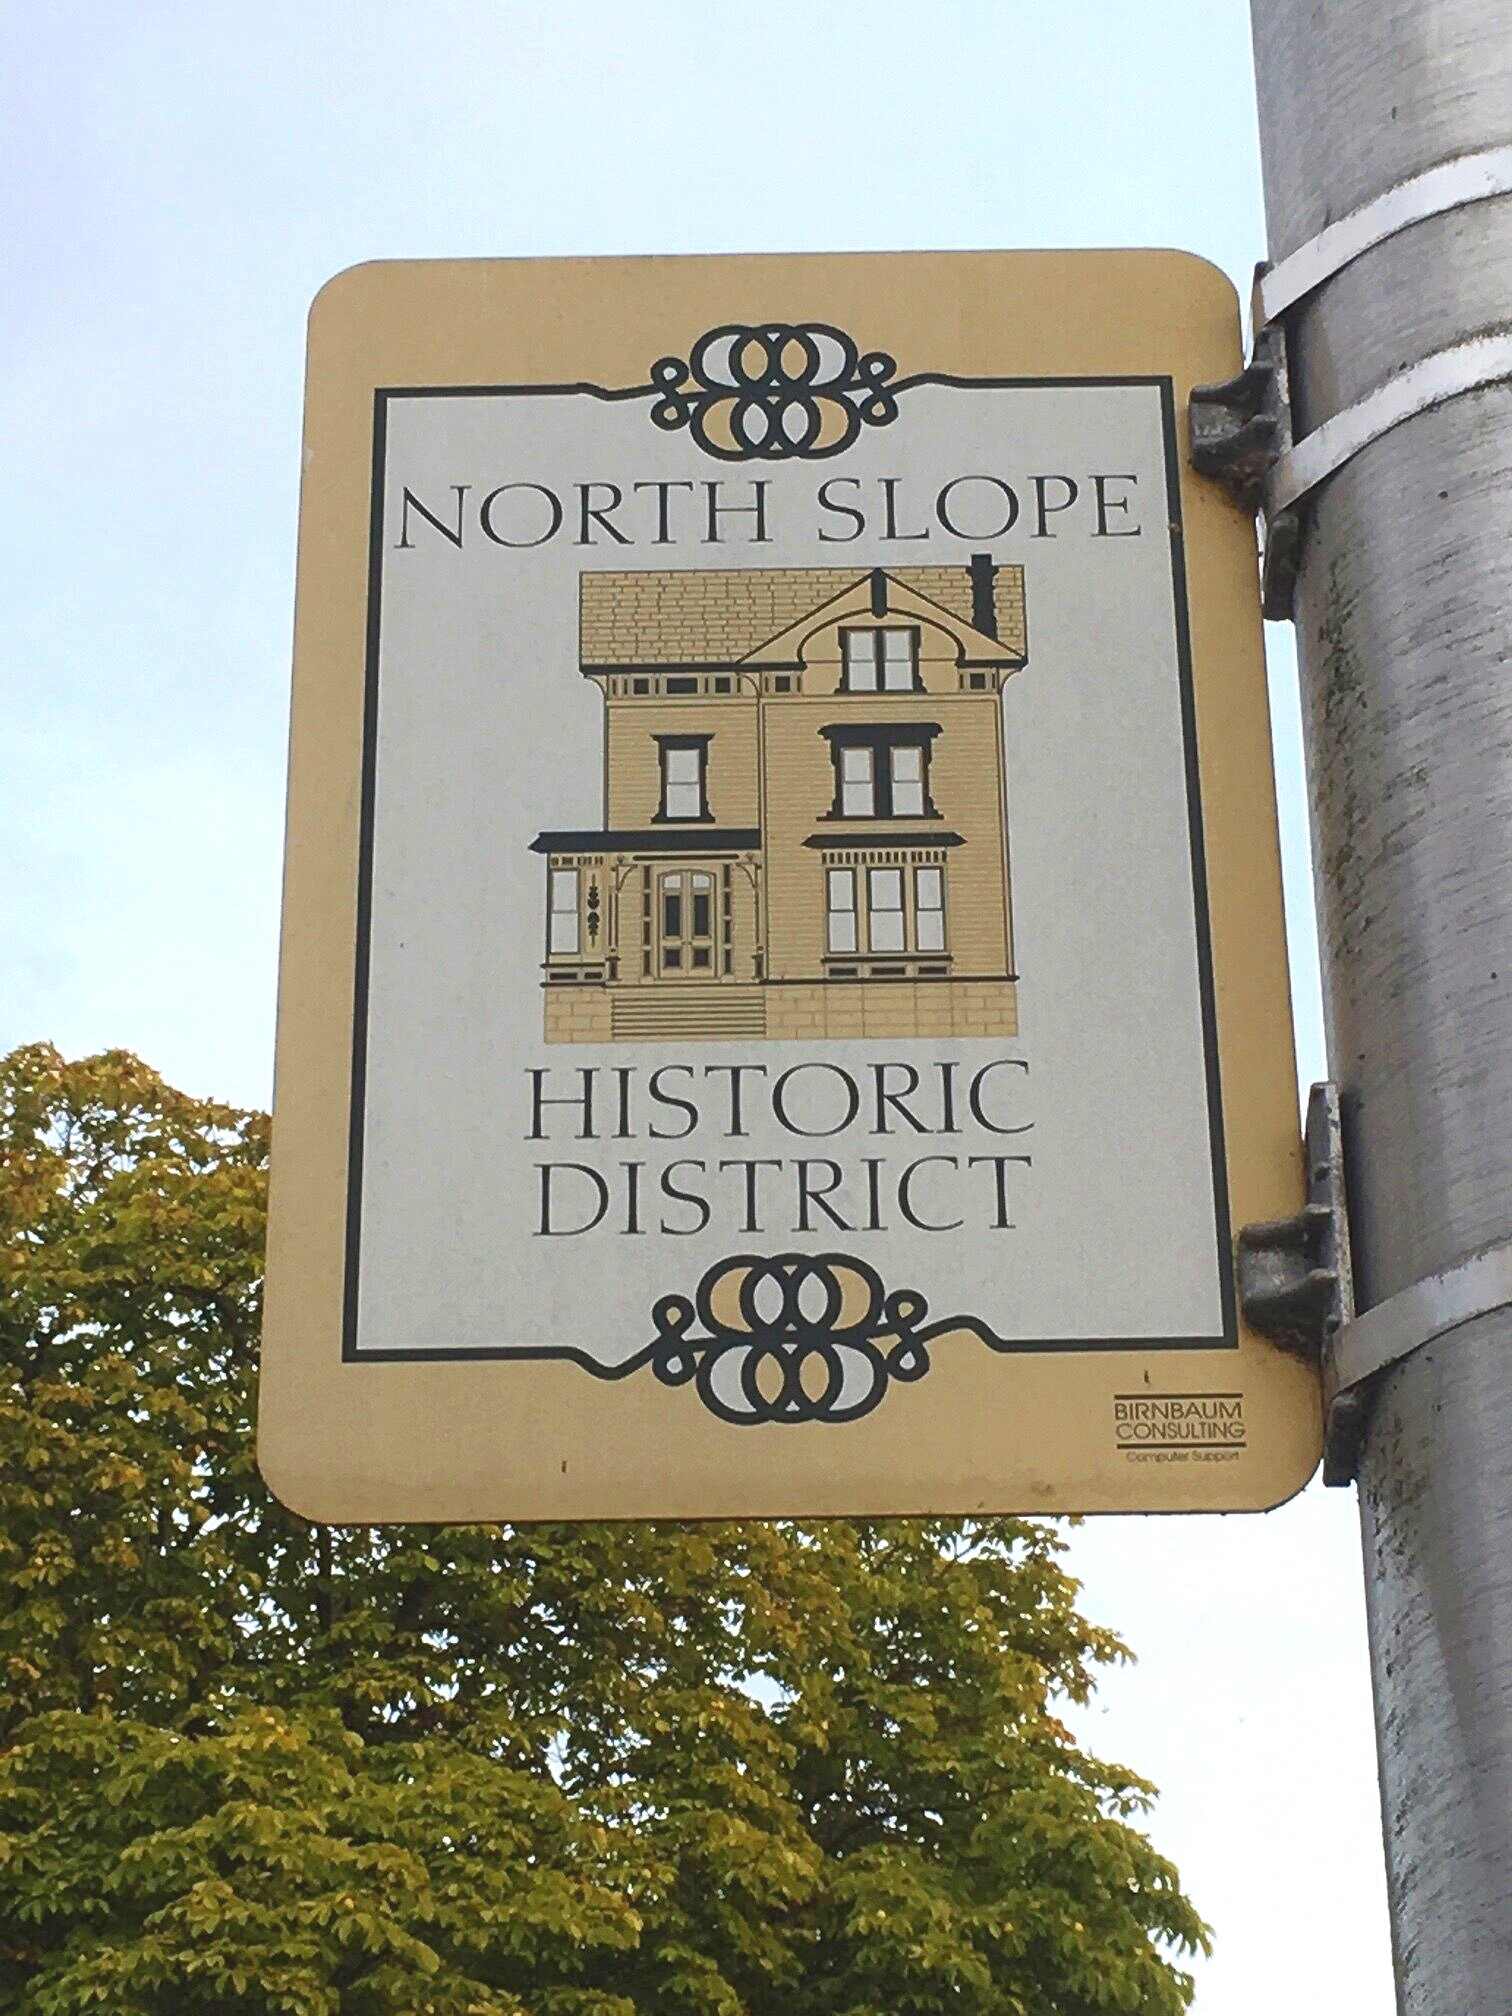 The North Slope Historic District is a wedge shaped neighborhood bordered by Stadium, Old Town, 6th Ave, and the 3 Bridges District. Walk any direction and you land in a good place!